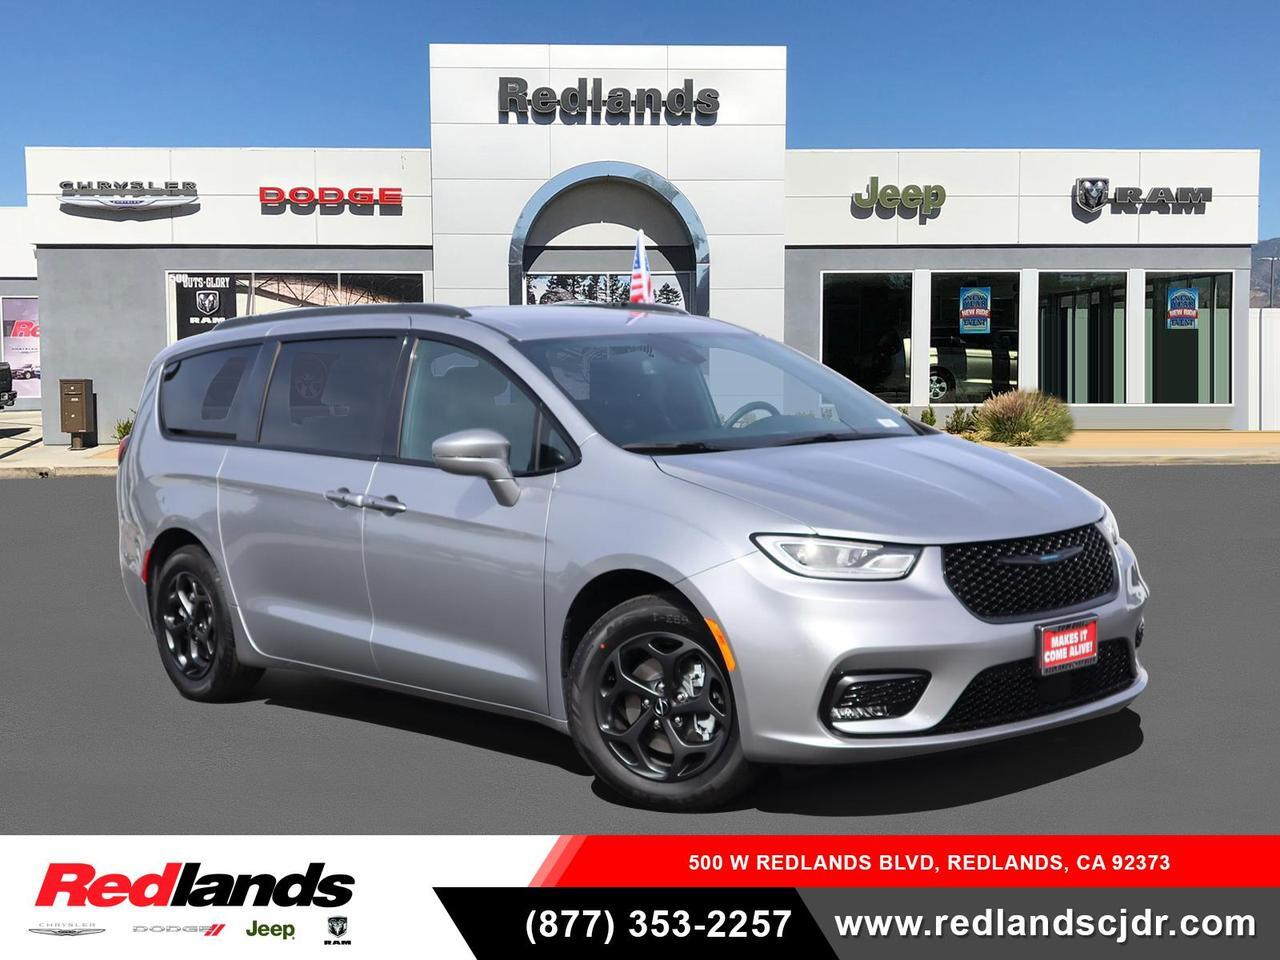 2021 Chrysler Pacifica Hybrid TOURING Redlands CA